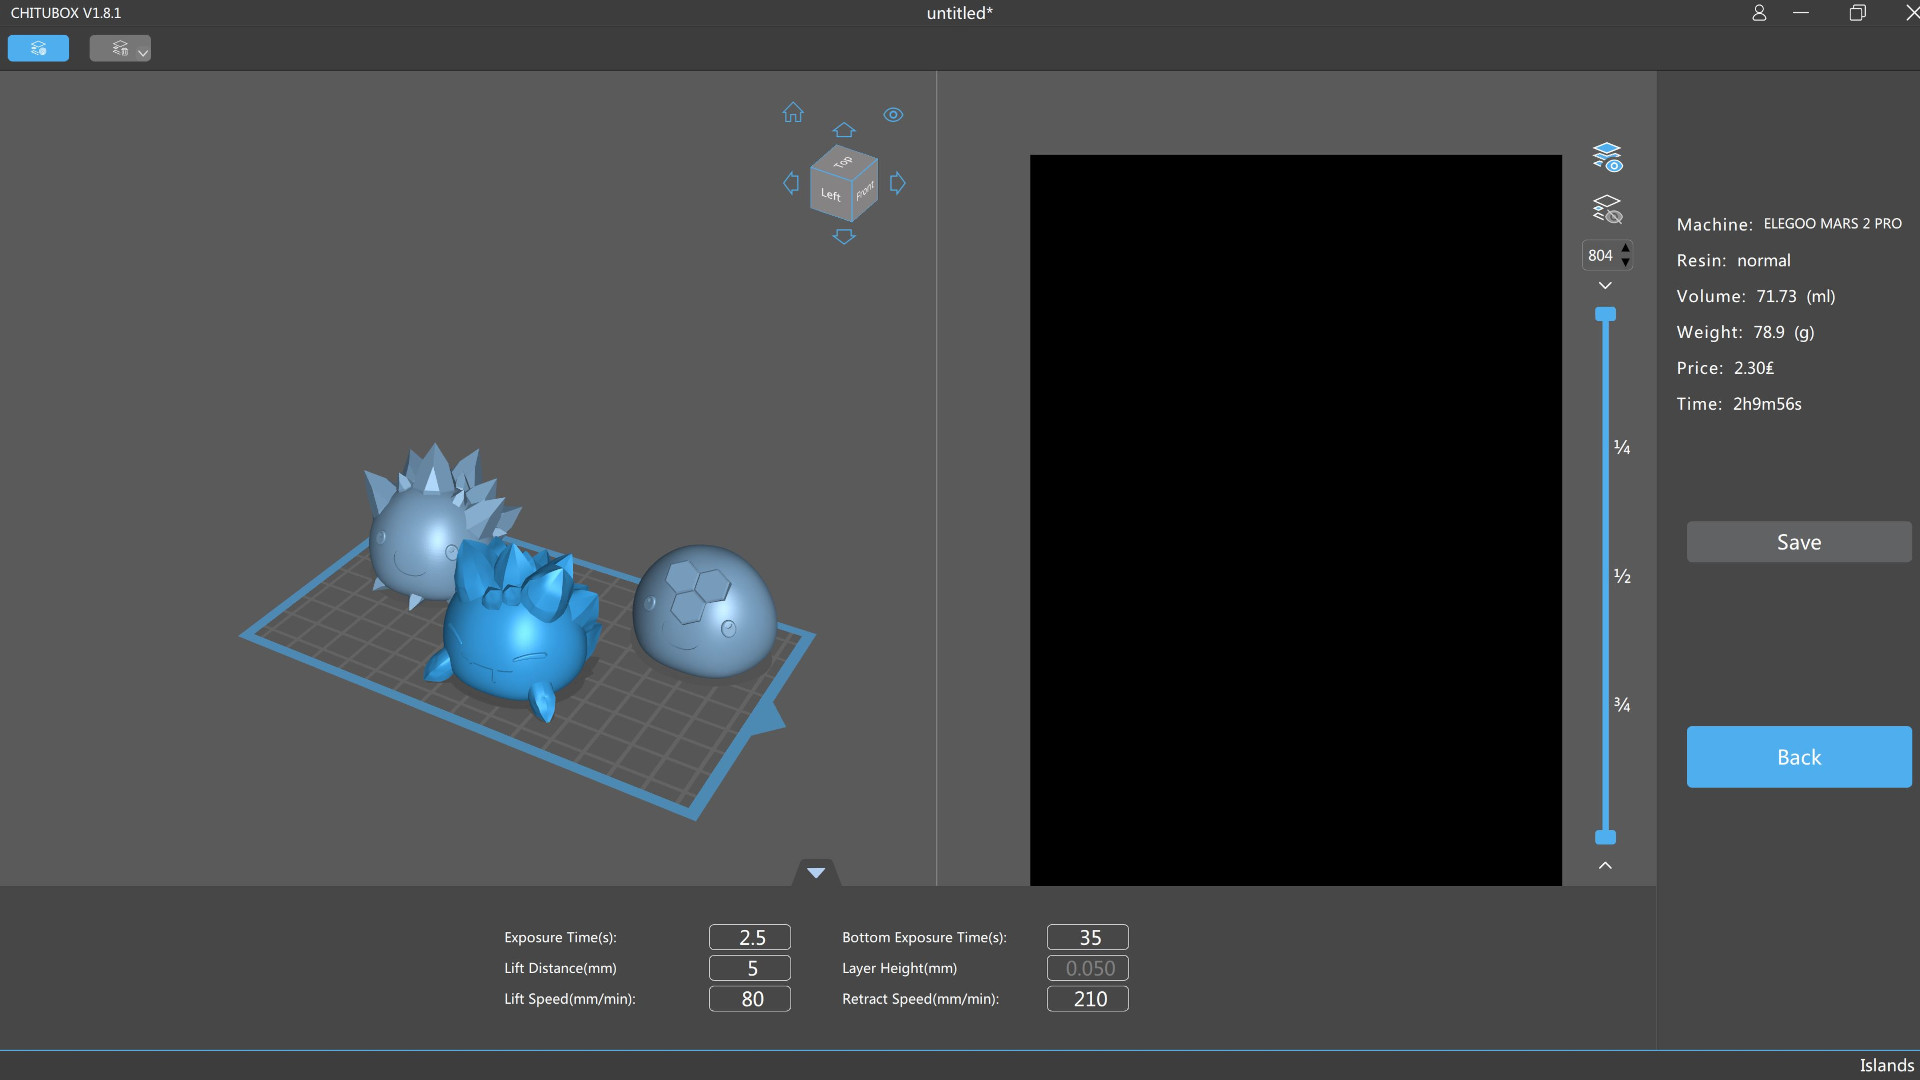 Slime Rancher figurines in the Chitu Box slicing software